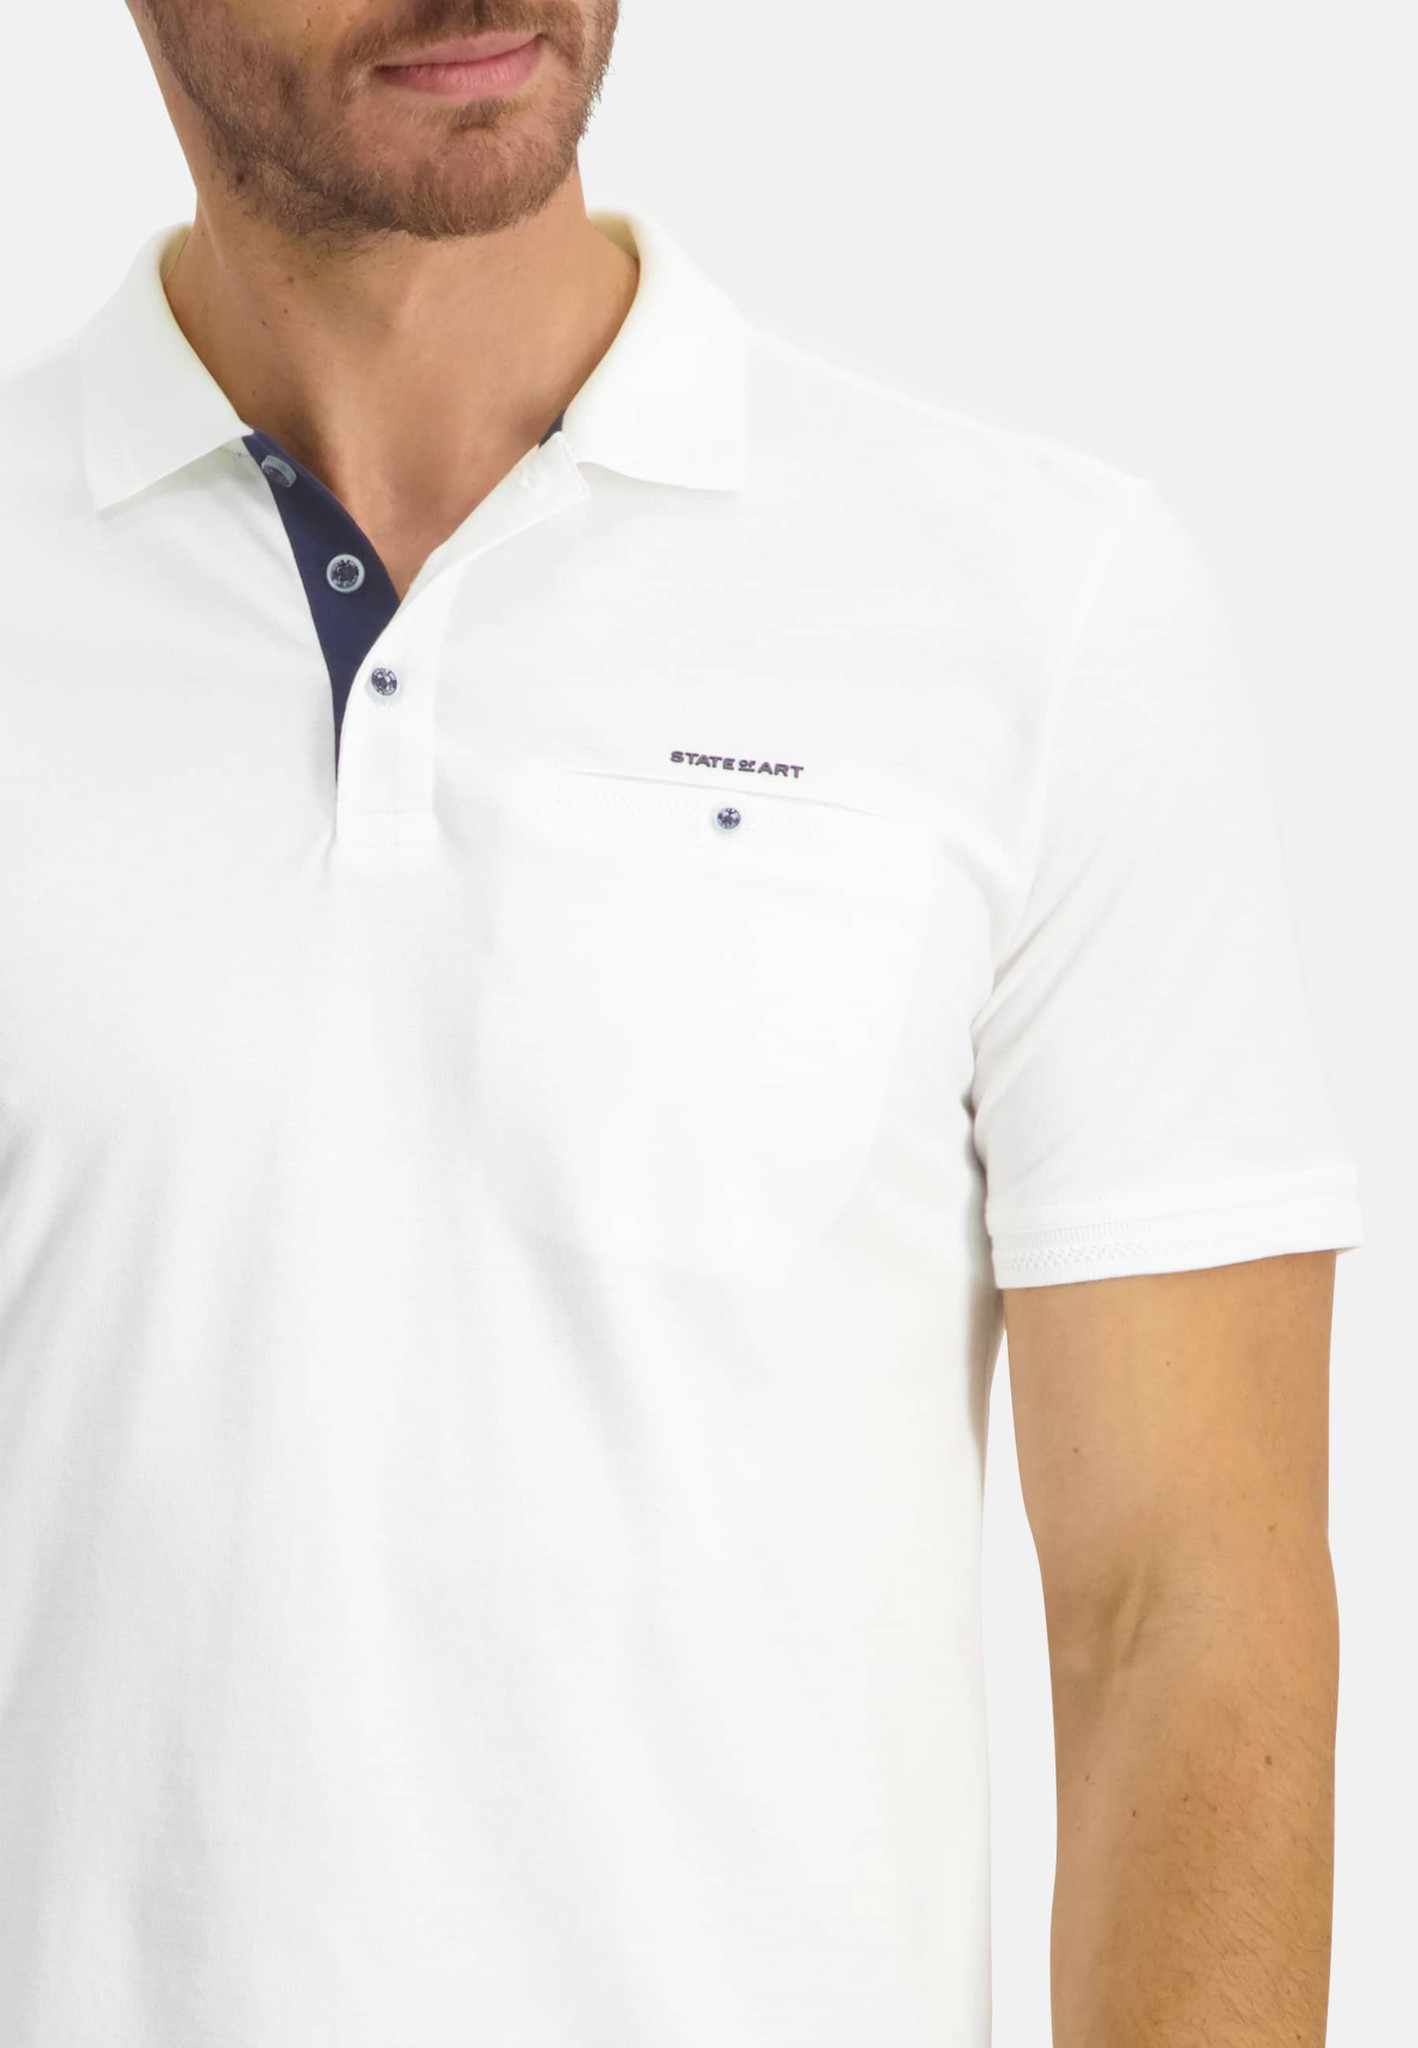 State of Art Polo State of Art 461-11599-1100